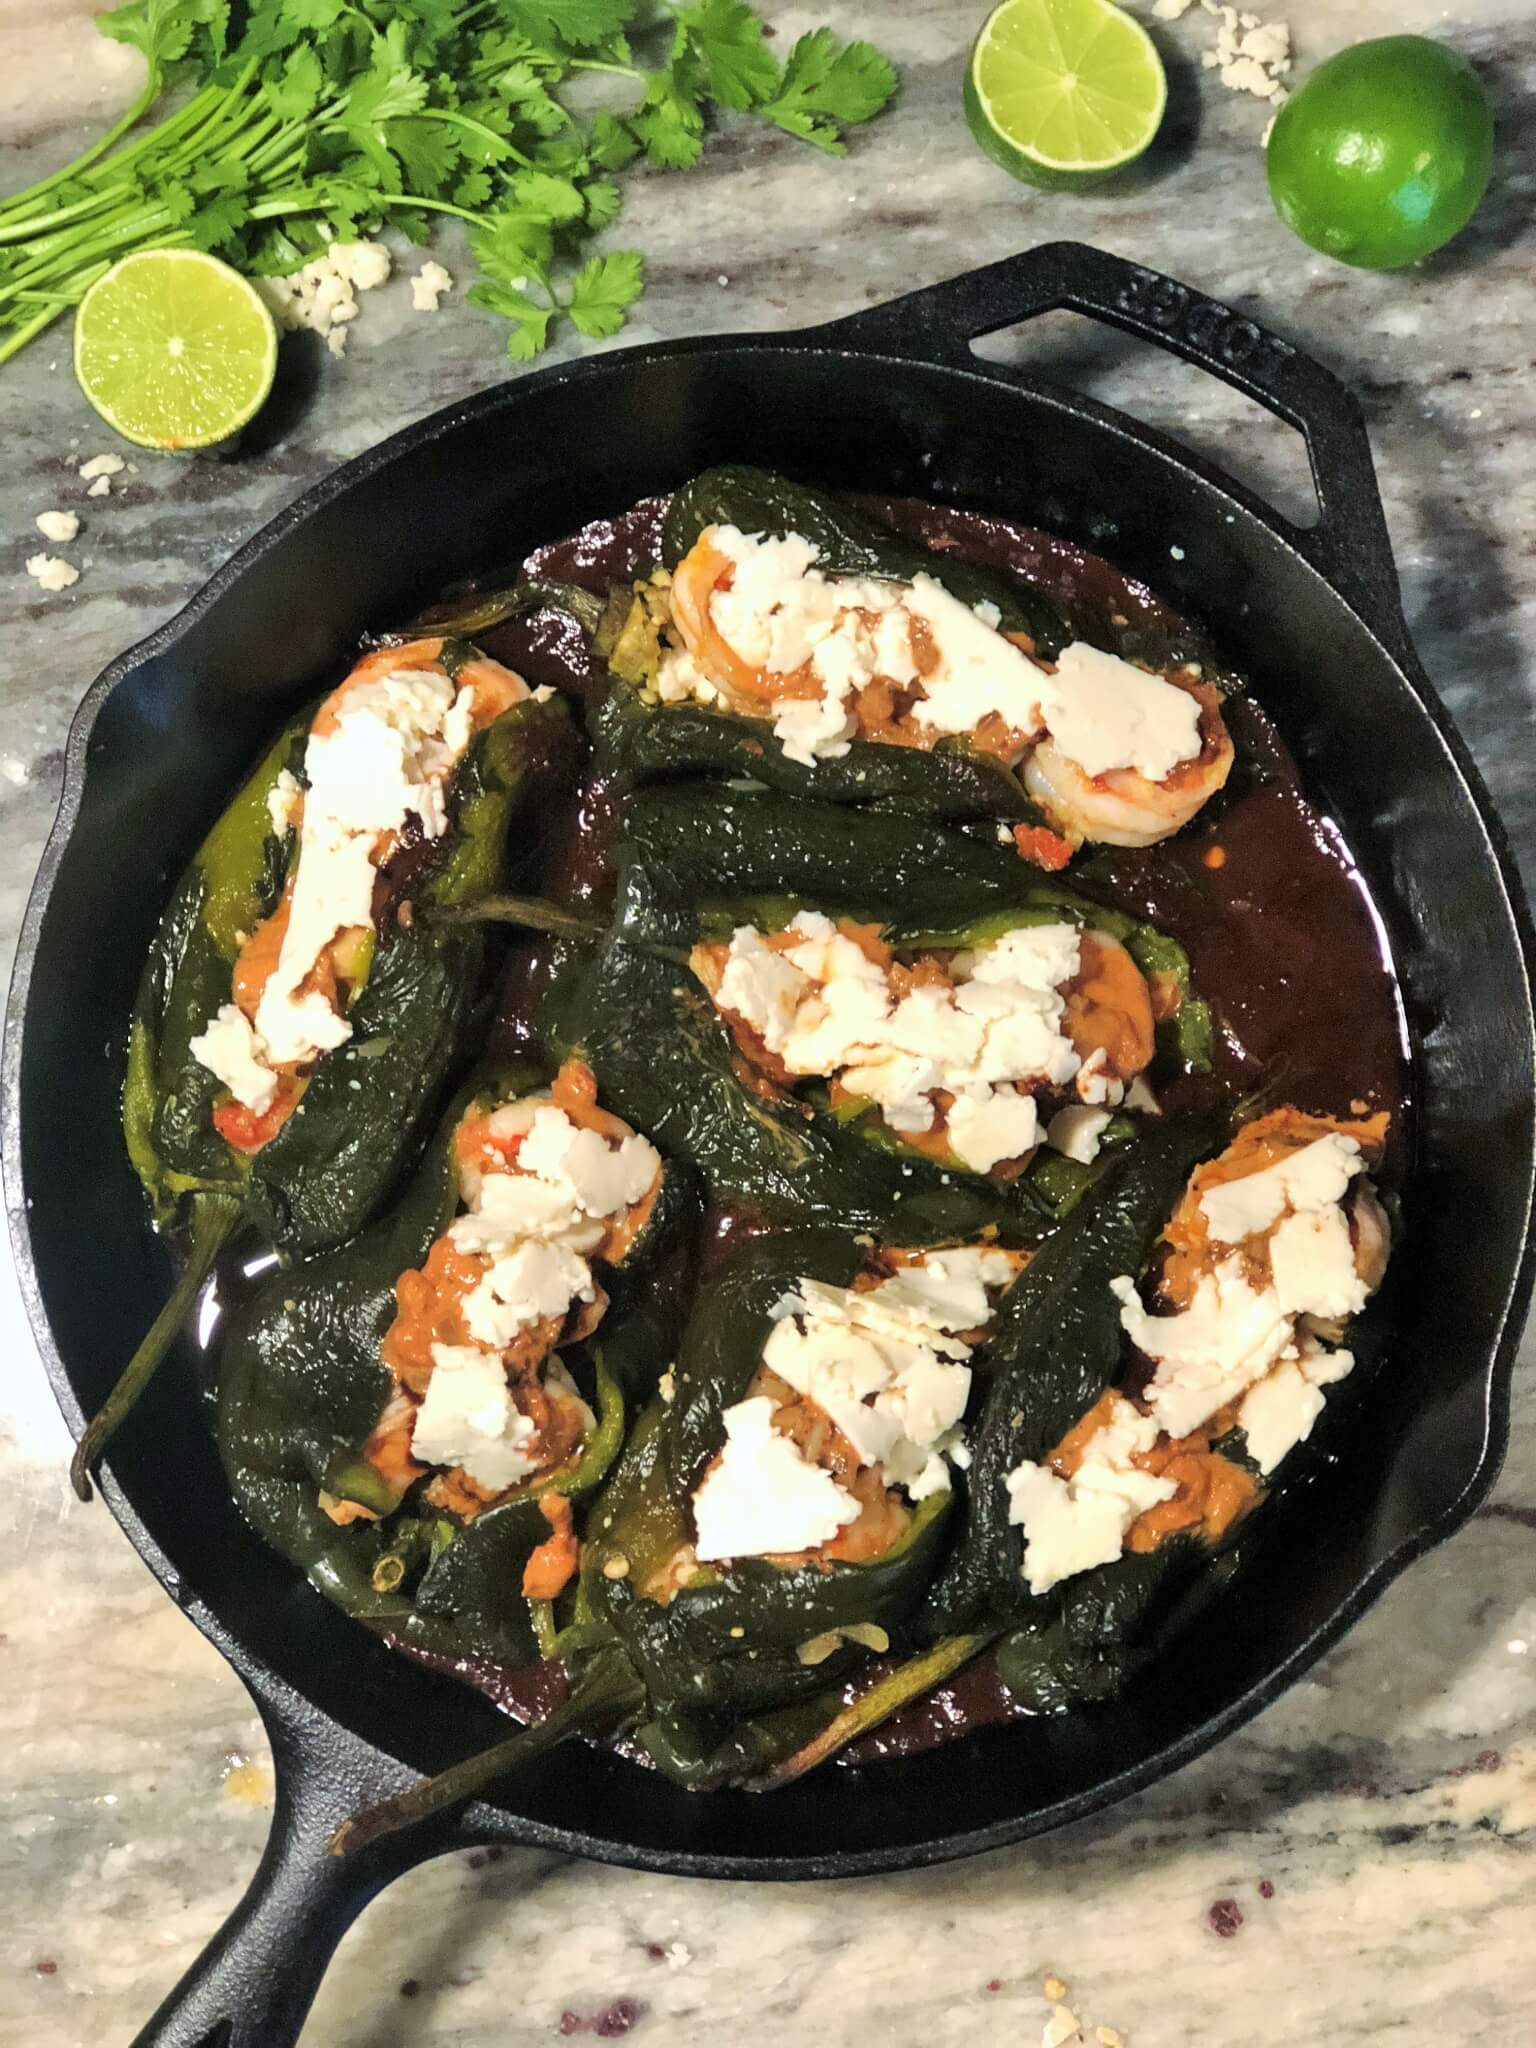 Cast Iron Skillet with Shrimp Chiles Rellenos before cooking